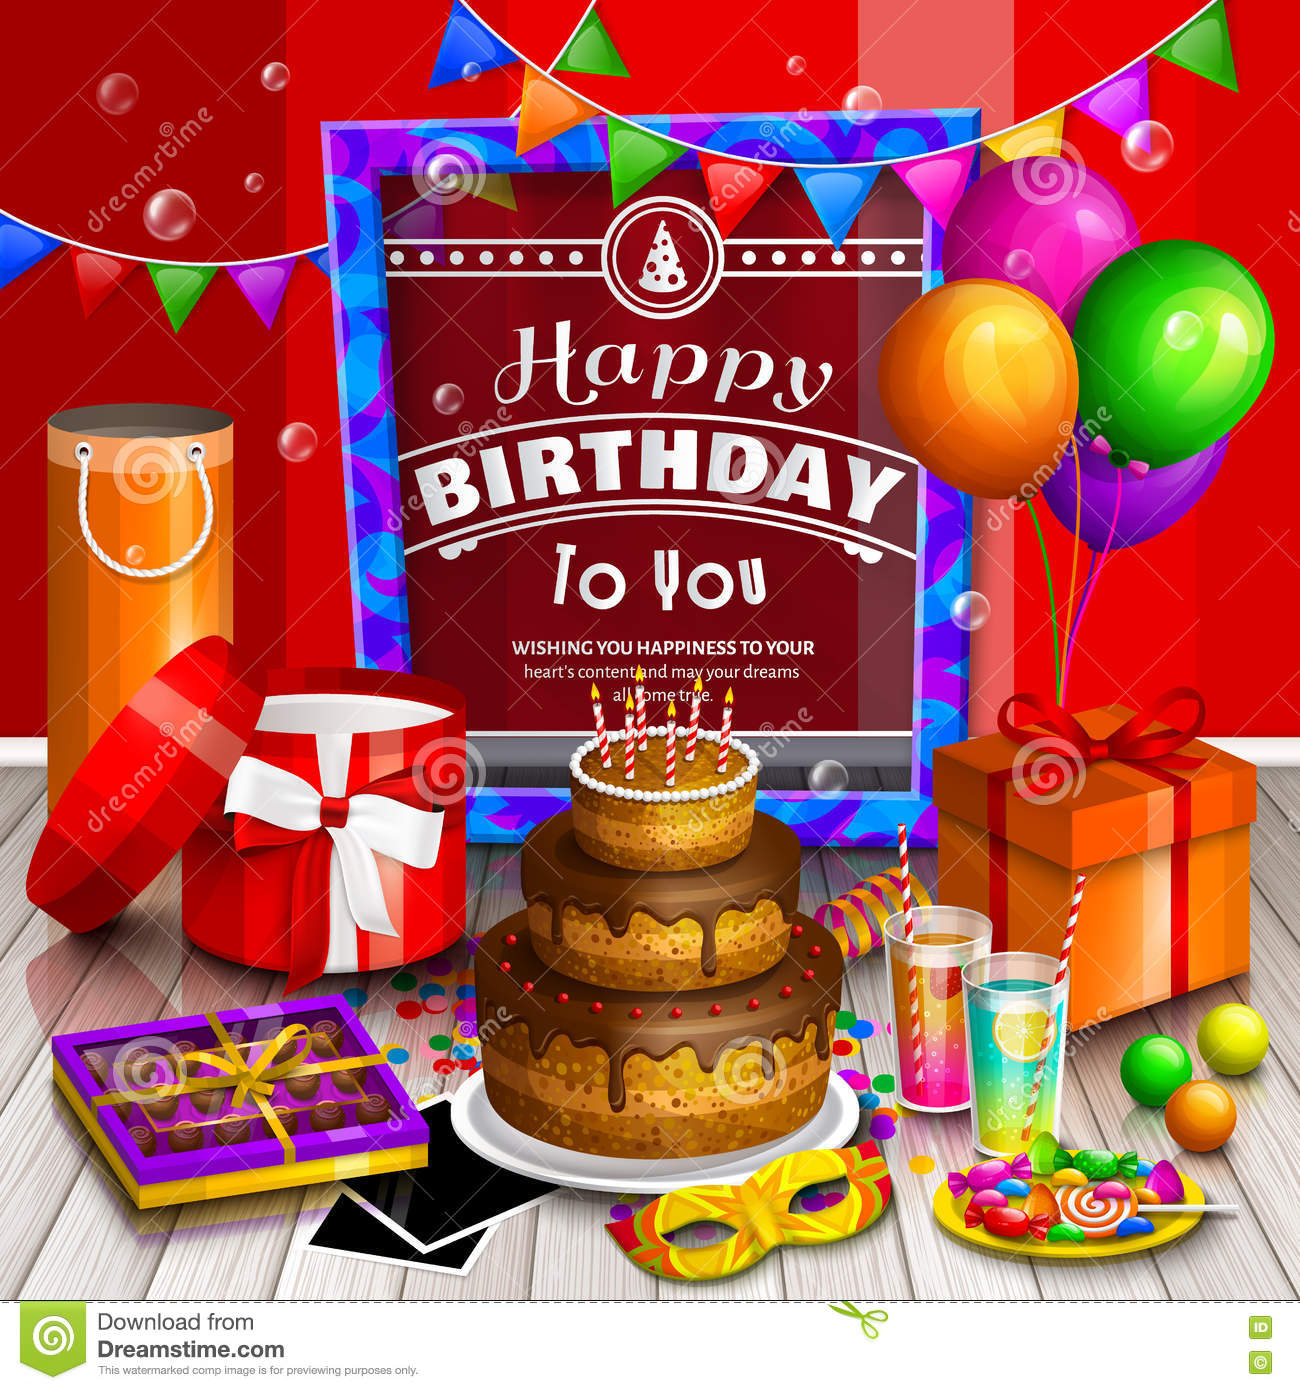 Happy Birthday Greeting Card Pile Of Colorful Wrapped Gift Boxes